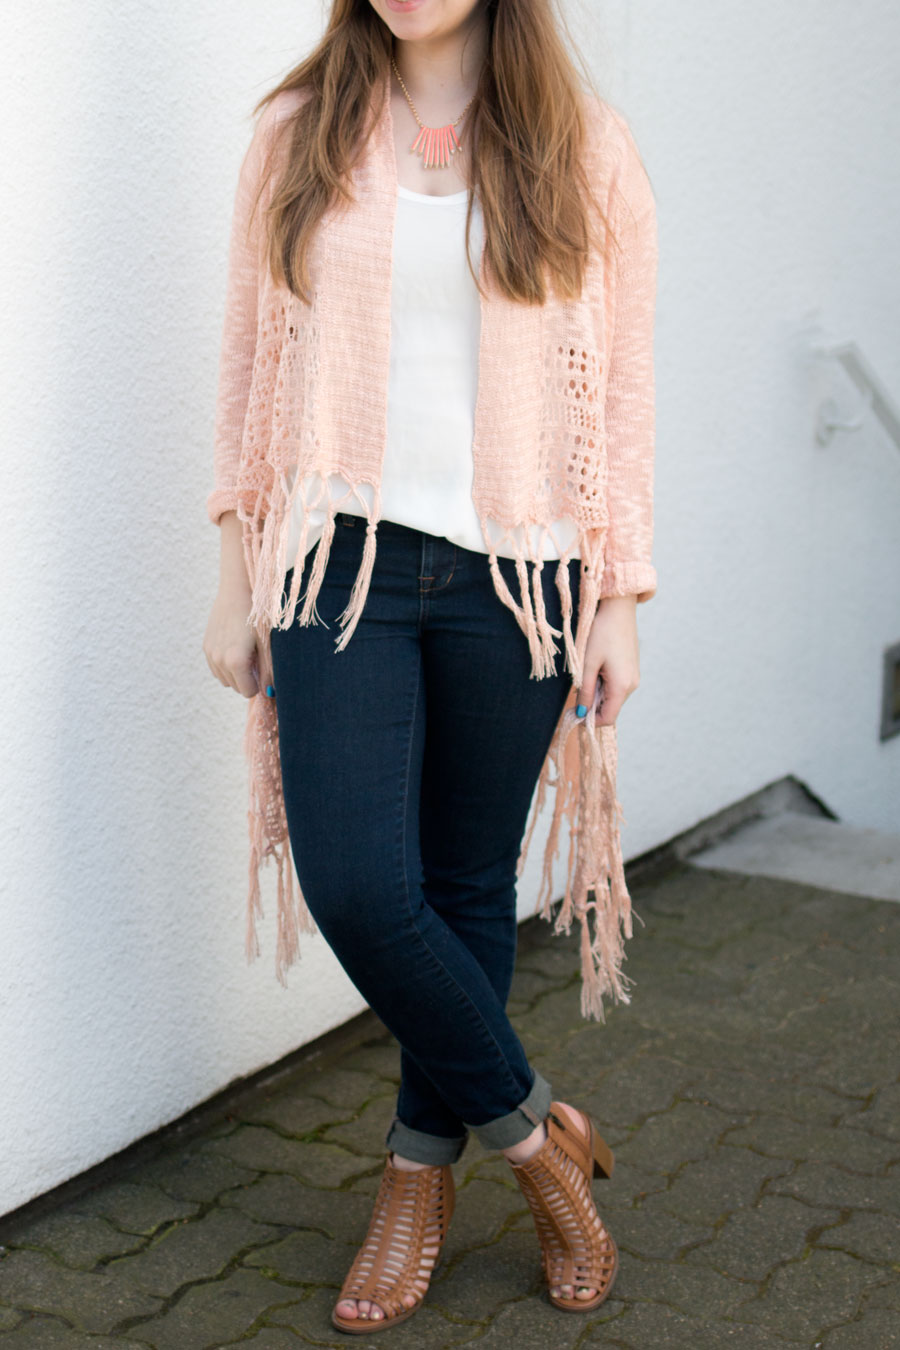 Fringe Cardigan, Skinny Jeans, and Caged Heels Outfit / hellorigby seattle fashion blog